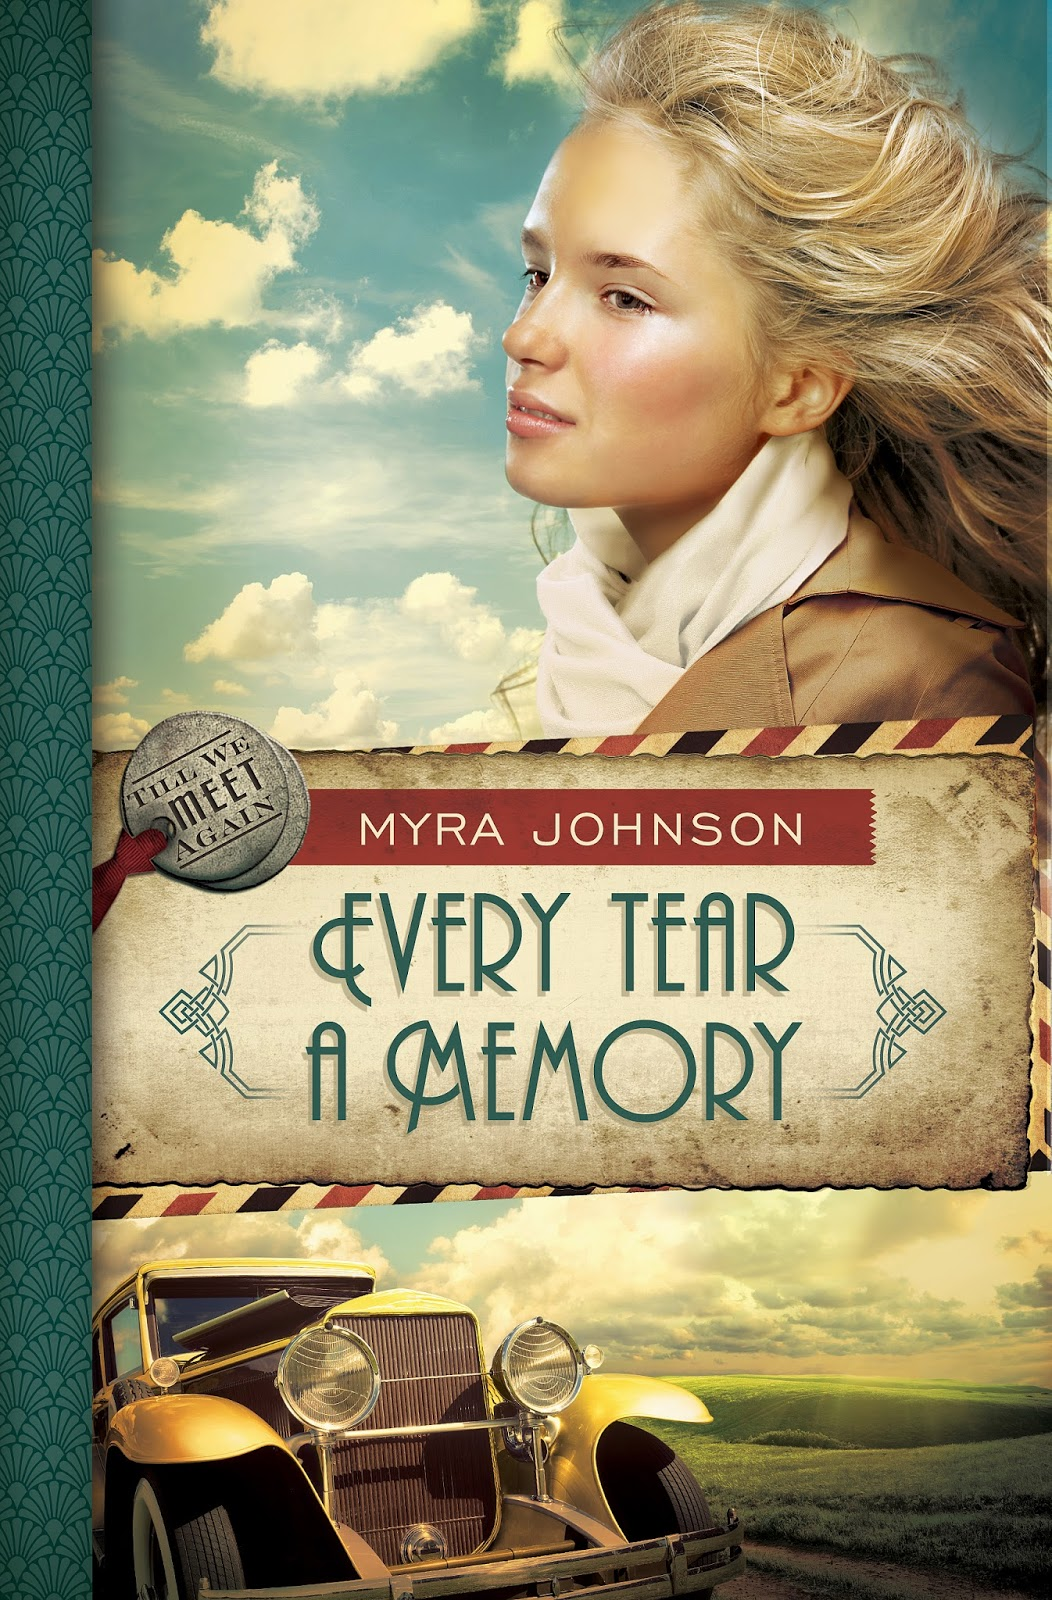 http://www.amazon.com/Every-Tear-Memory-Till-Again/dp/1426753721/ref=sr_1_1_title_1_pap?s=books&ie=UTF8&qid=1410464971&sr=1-1&keywords=every+tear+a+memory